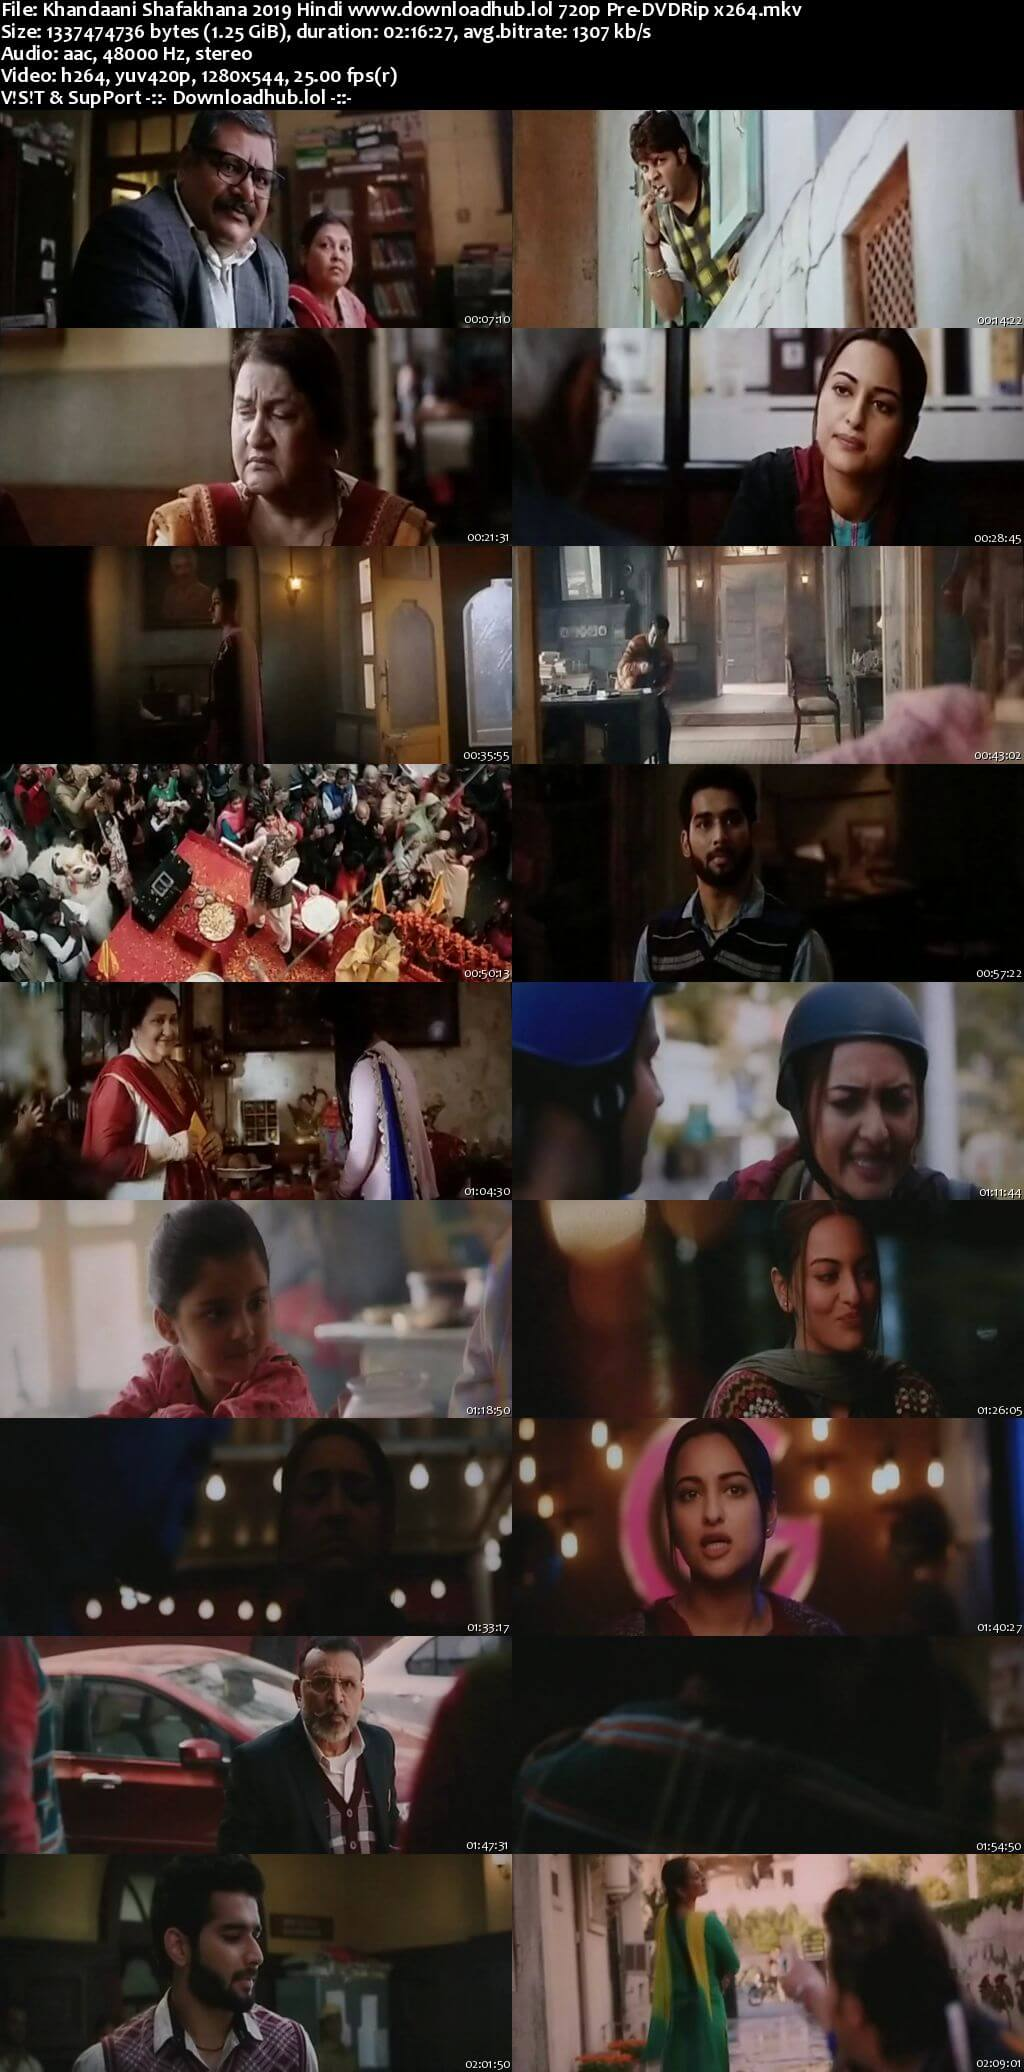 Khandaani Shafakhana 2019 Hindi 720p Pre-DVDRip x264